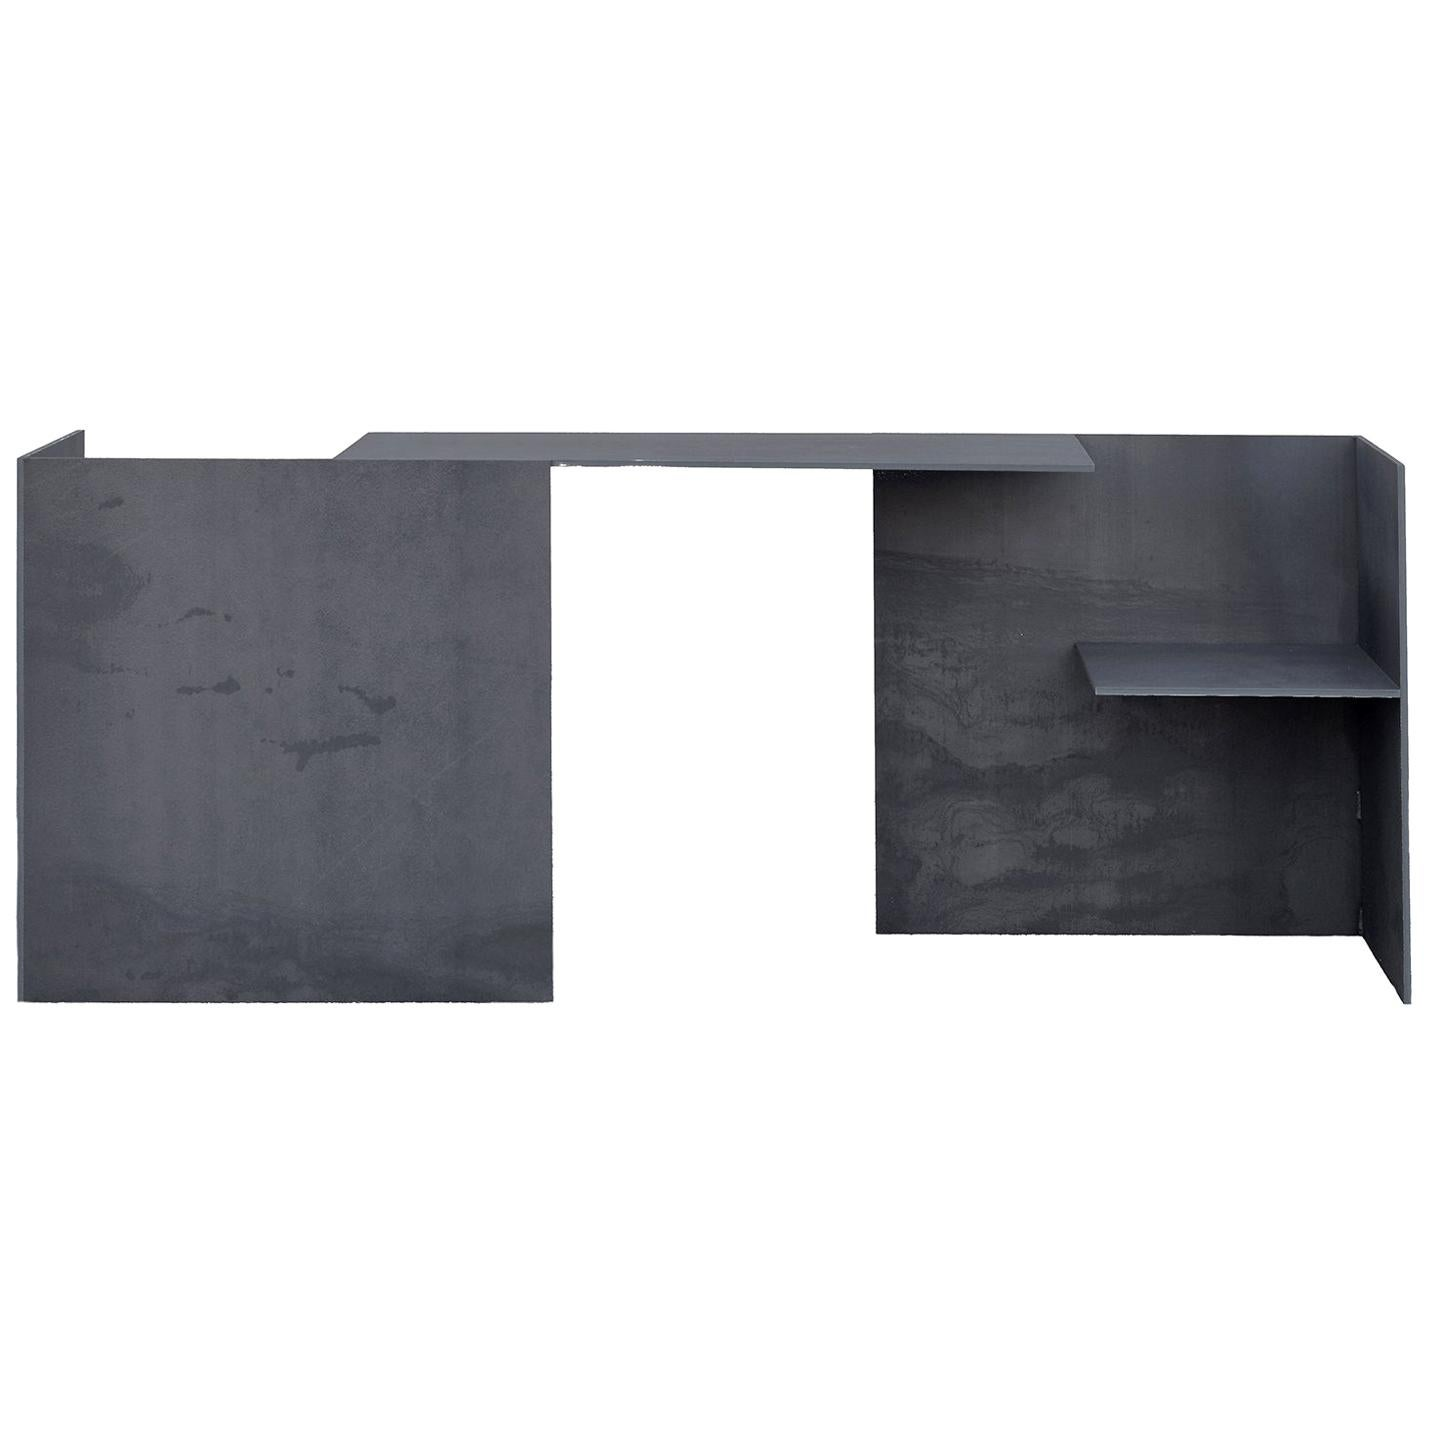 Mat Blue Steel Plate 21st Century Collectible Design MSB Two-Seater Double Desk